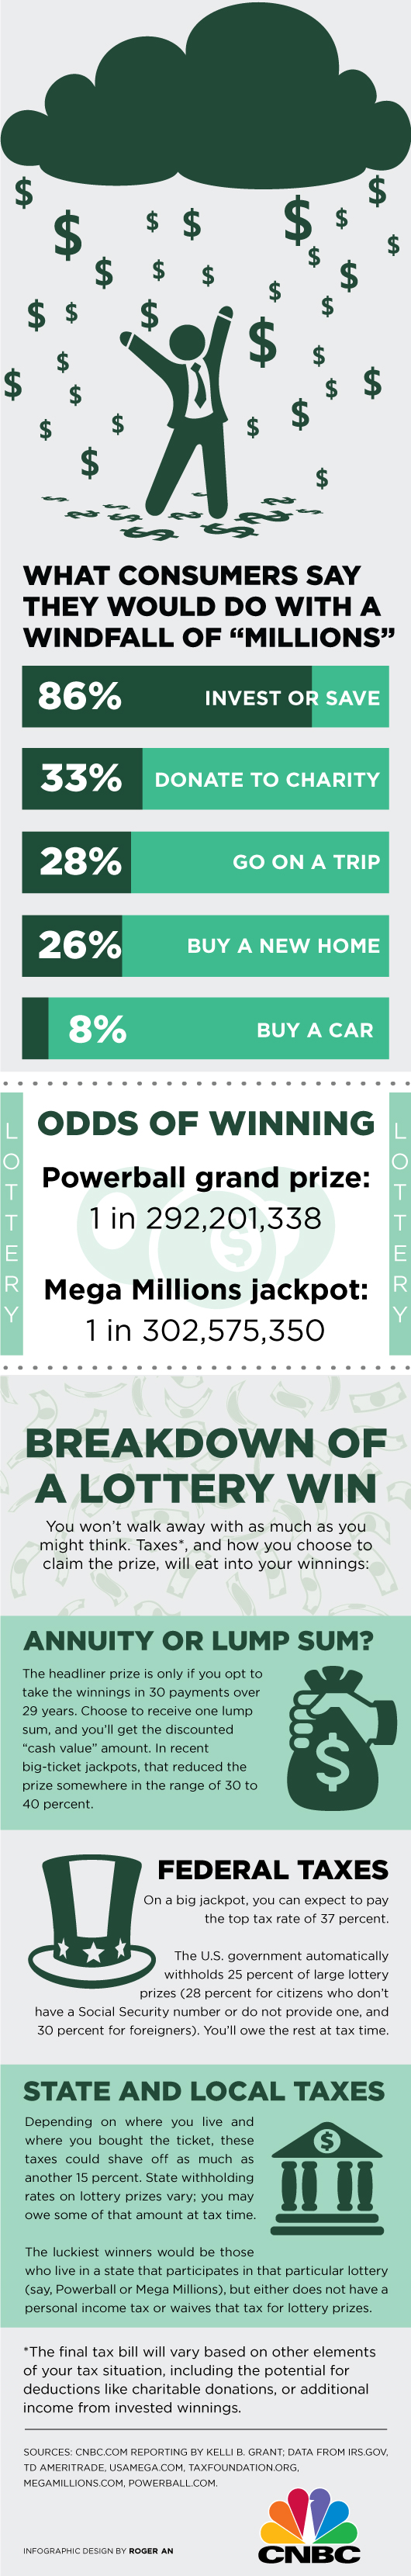 Editor S Note This Story Has Been Updated To Reflect The Accurate Taxation Of Lottery Wins In California